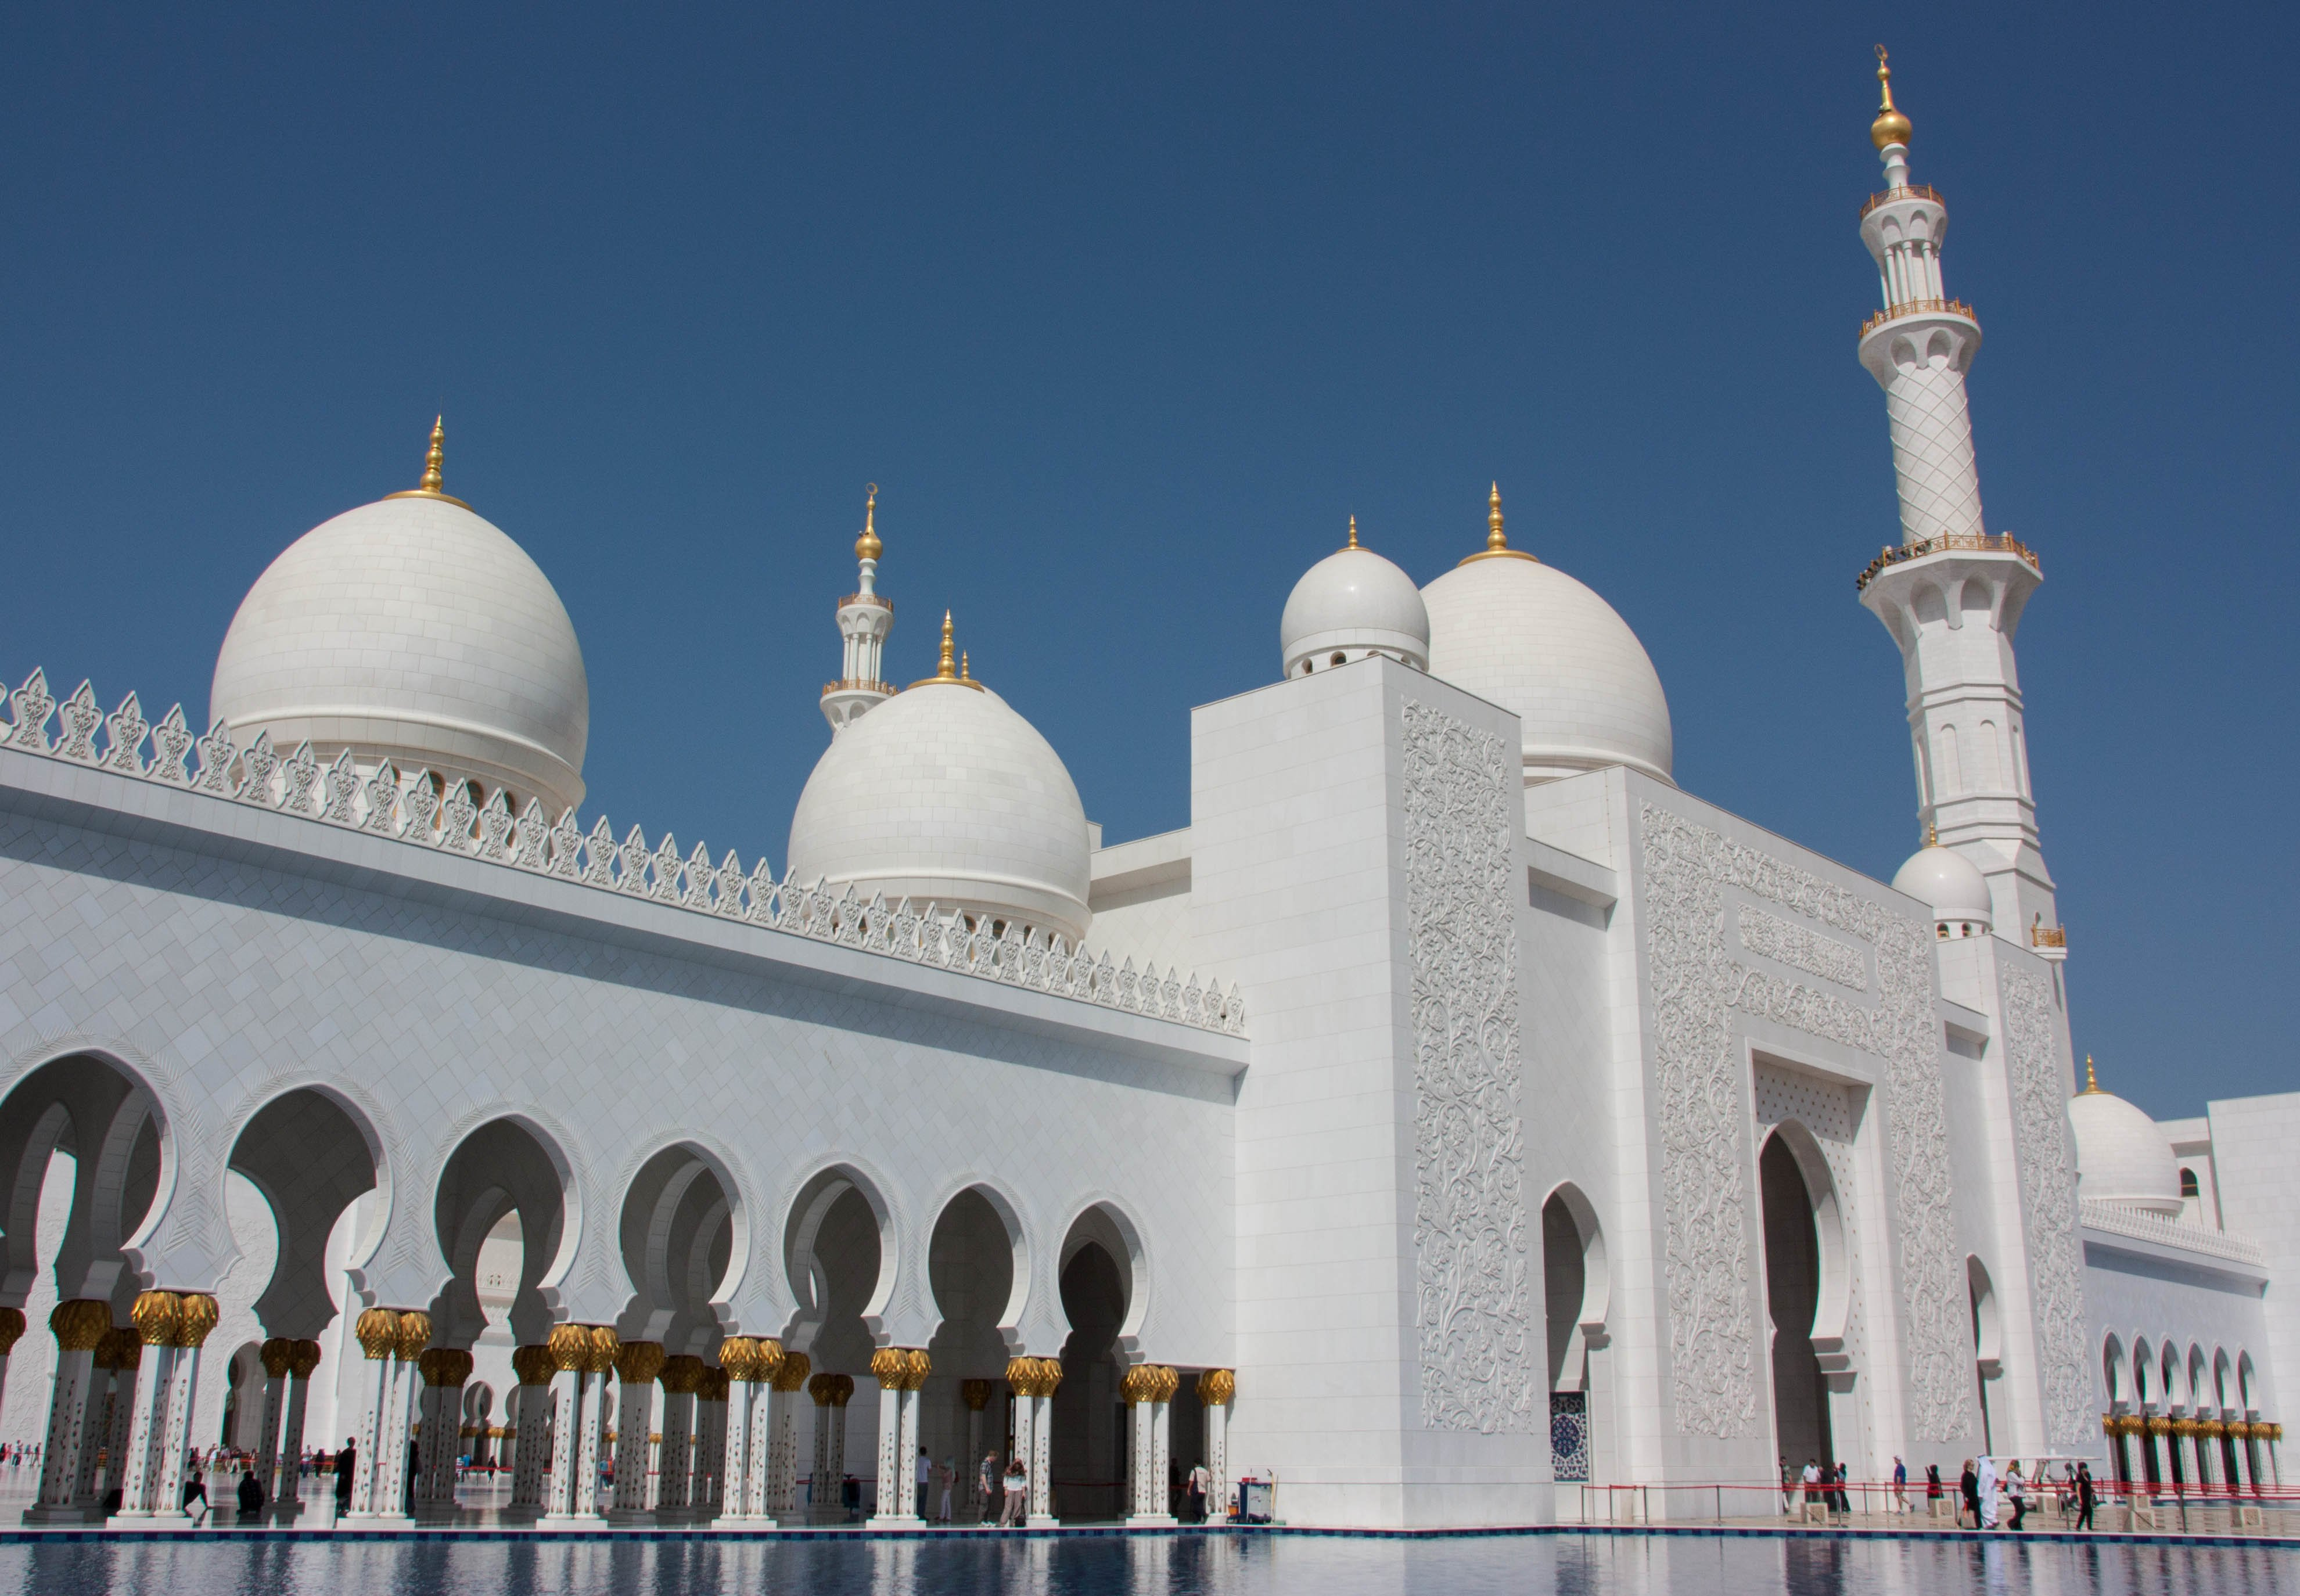 Arabic Zeal Sheikh Zayed Mosque Floral Exquisite